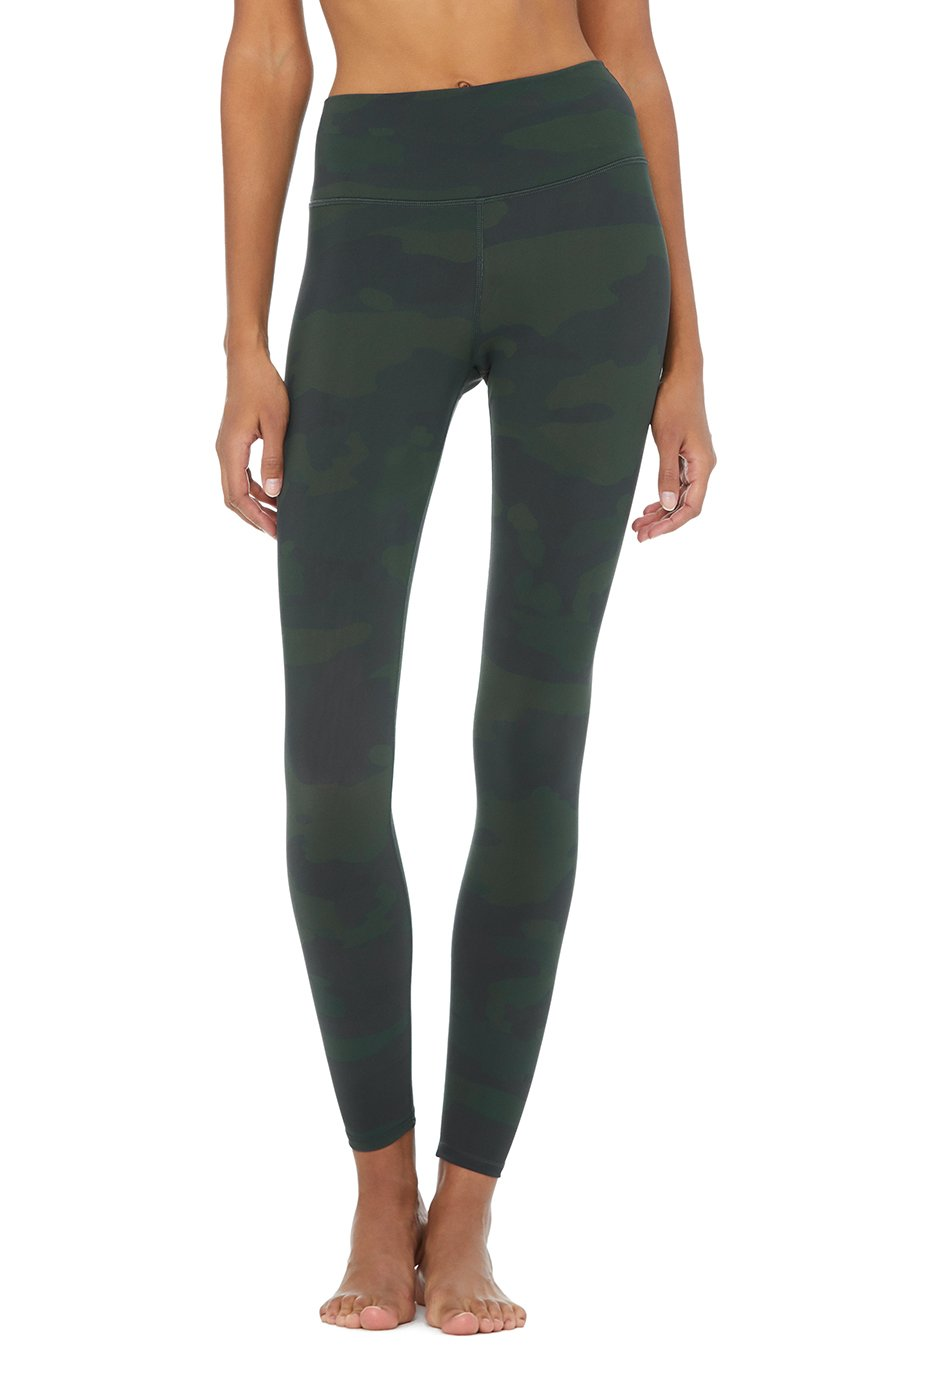 Alo Yoga SMALL High-Waist Camo Vapor Legging - Hunter Camouflage